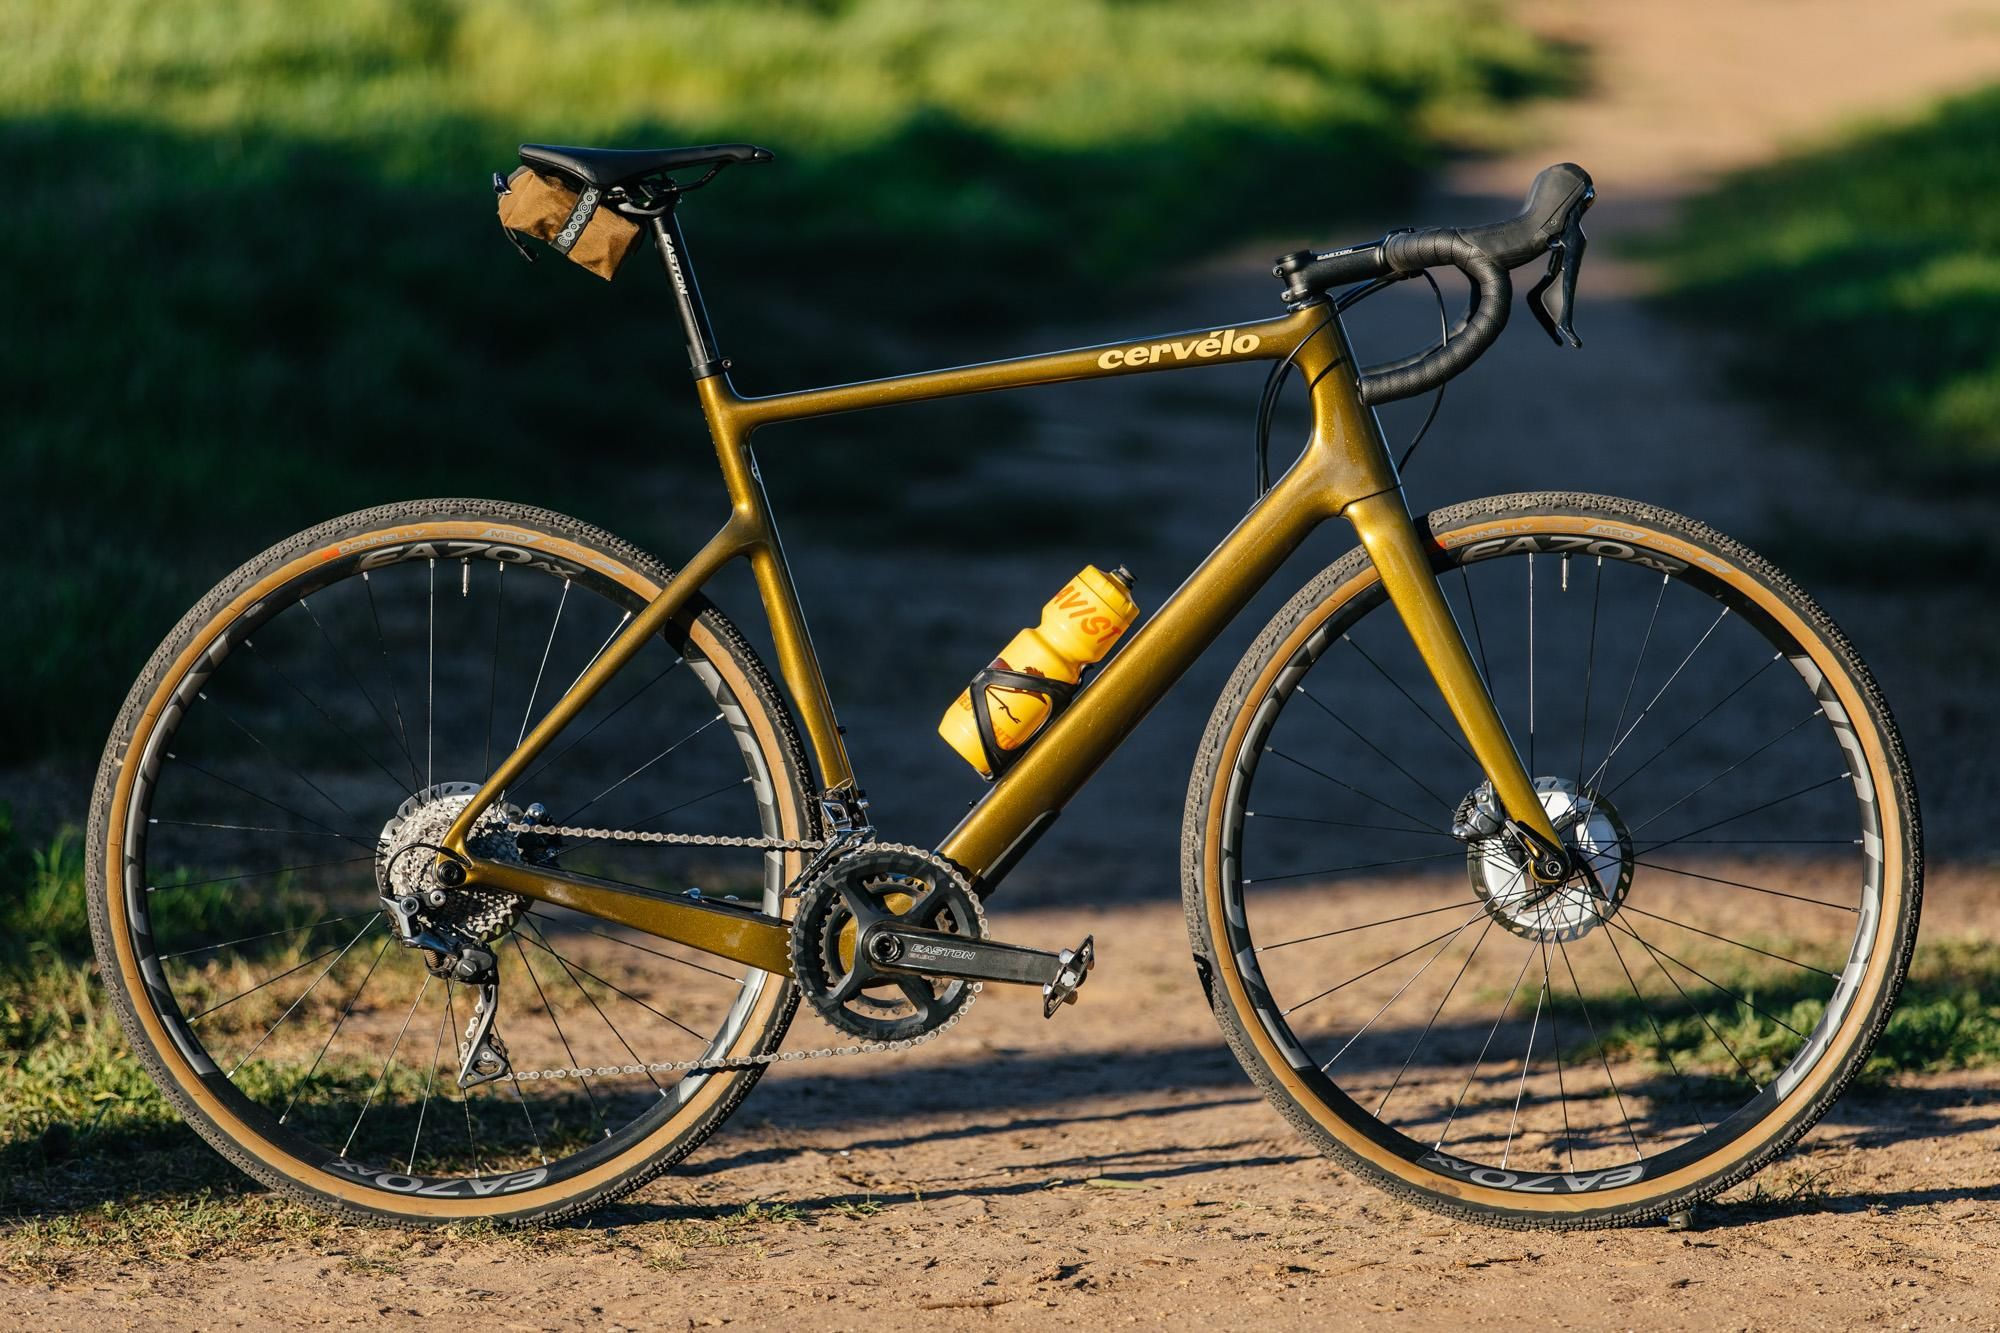 Pin By Dillon Lawrence On Gravel Adventure Bikes In 2020 Bike